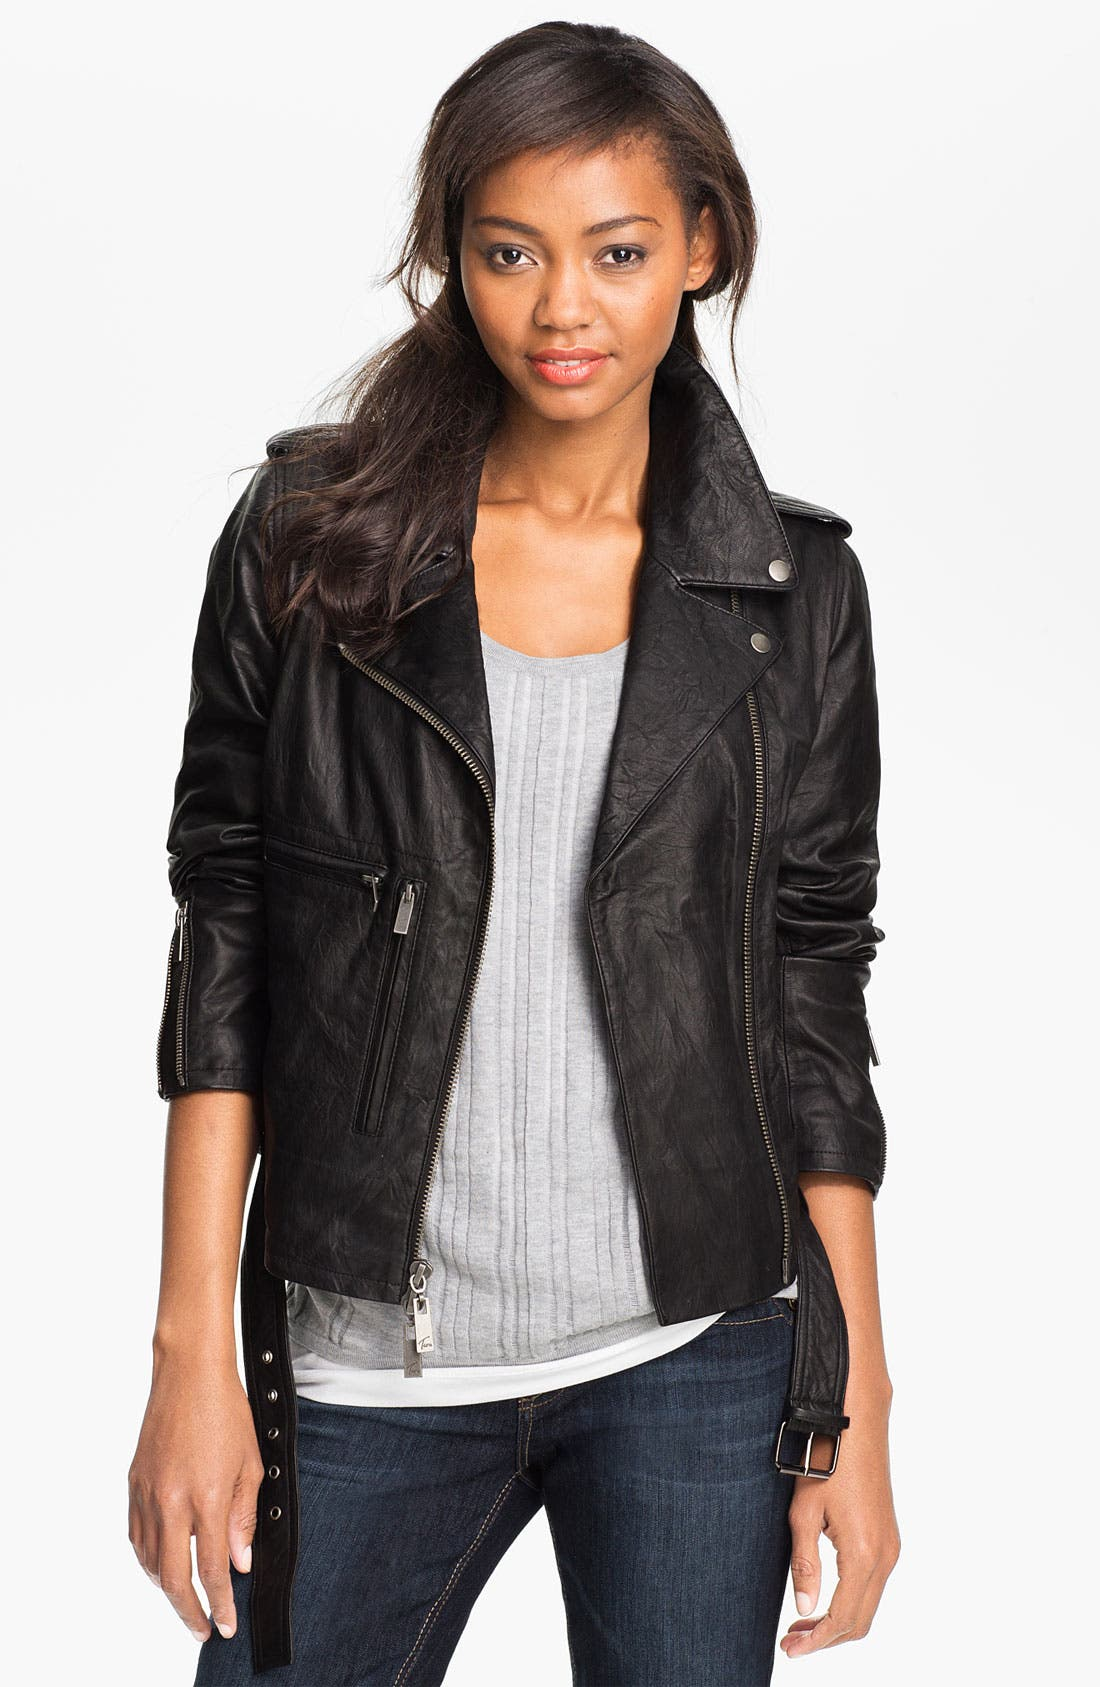 Alternate Image 1 Selected - Two by Vince Camuto Leather Jacket